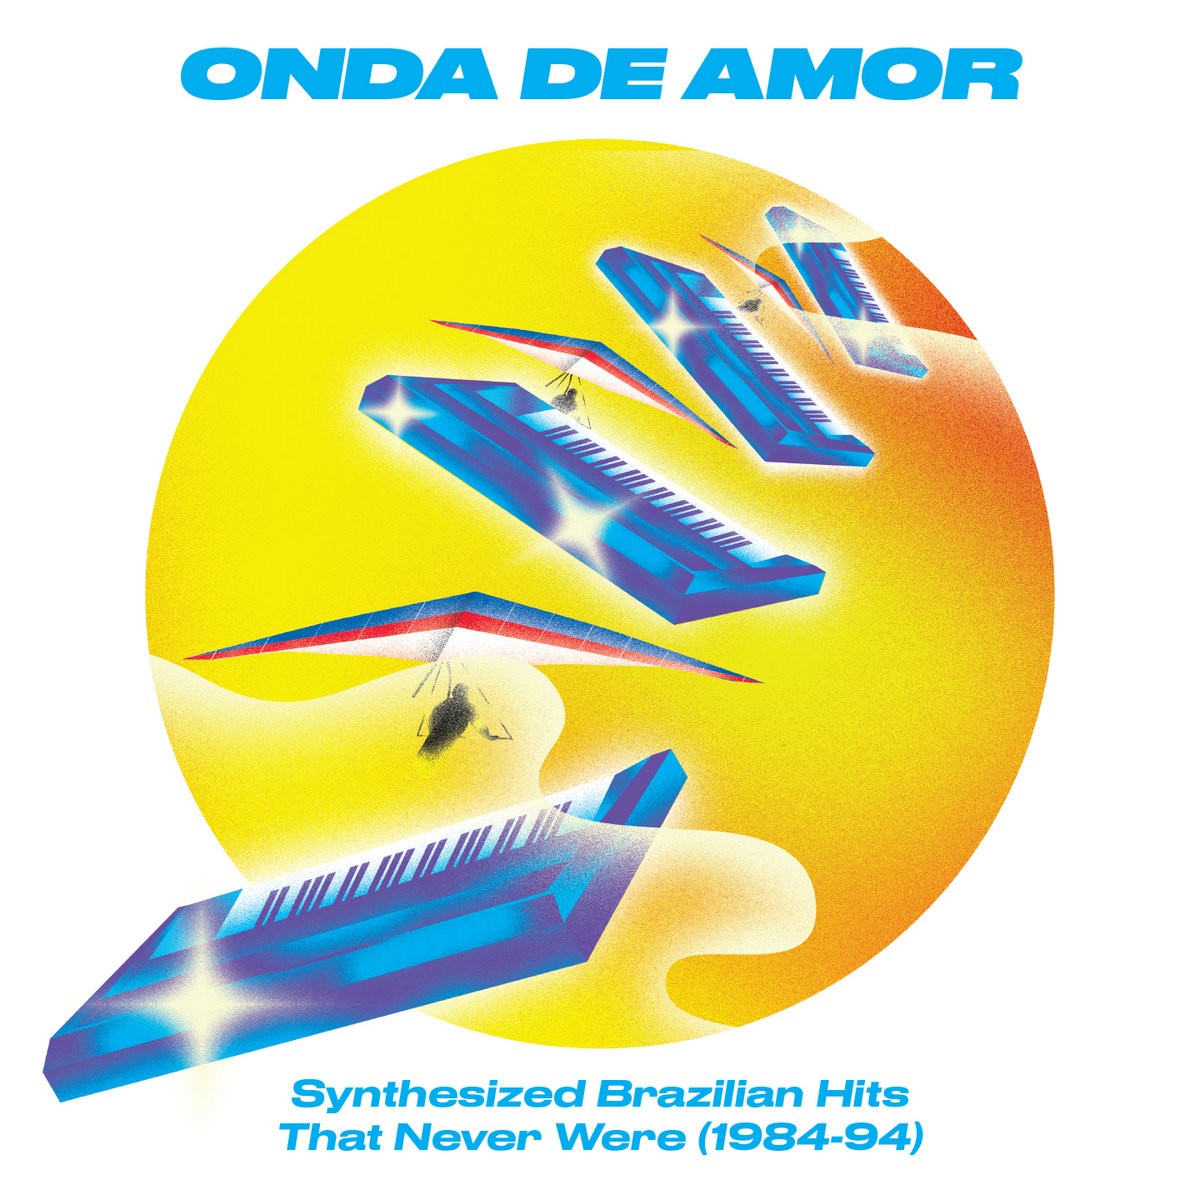 Onda De Amor: Synthesized Brazilian Hits That Never Were (1984-94